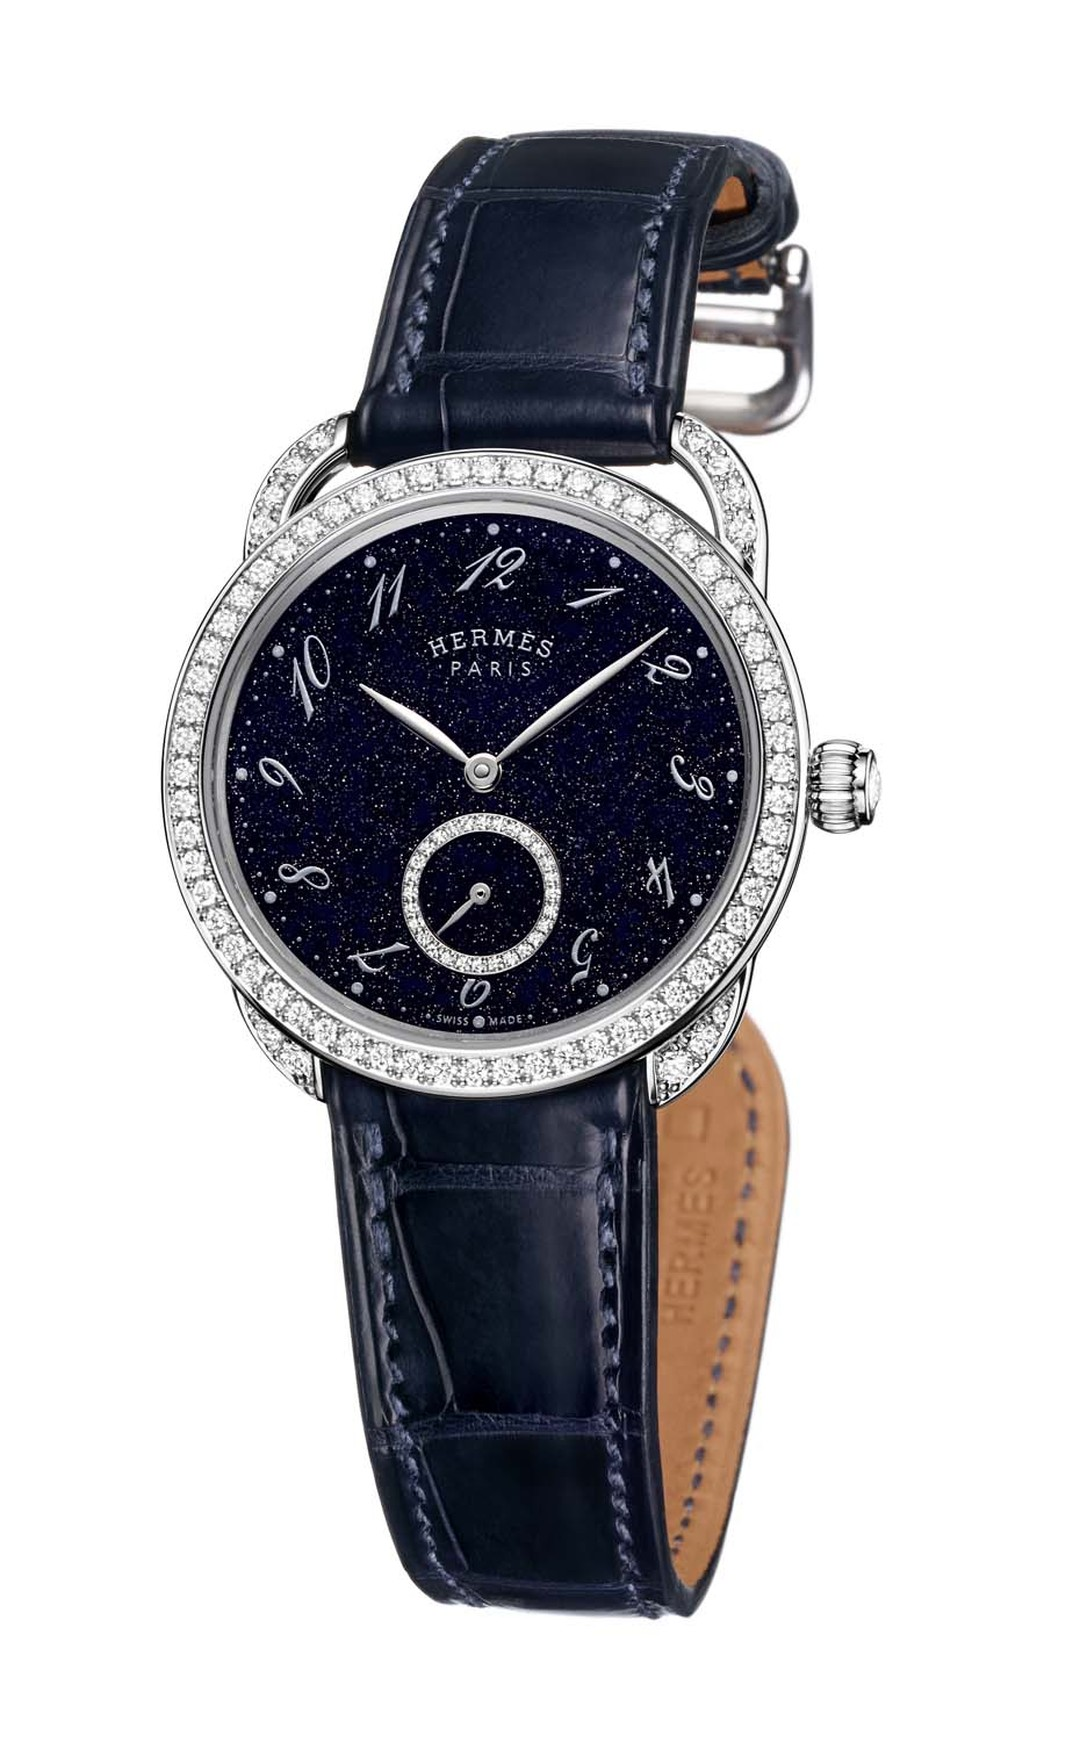 The Hermès Arceau Ecuyère Aventurine ladies' watch is a romantic ode to the night sky. The aventurine stone dial, sparkling with its natural metallic inclusions, recreates the effect of a dark blue sky, highlighted by a constellation of white diamonds on